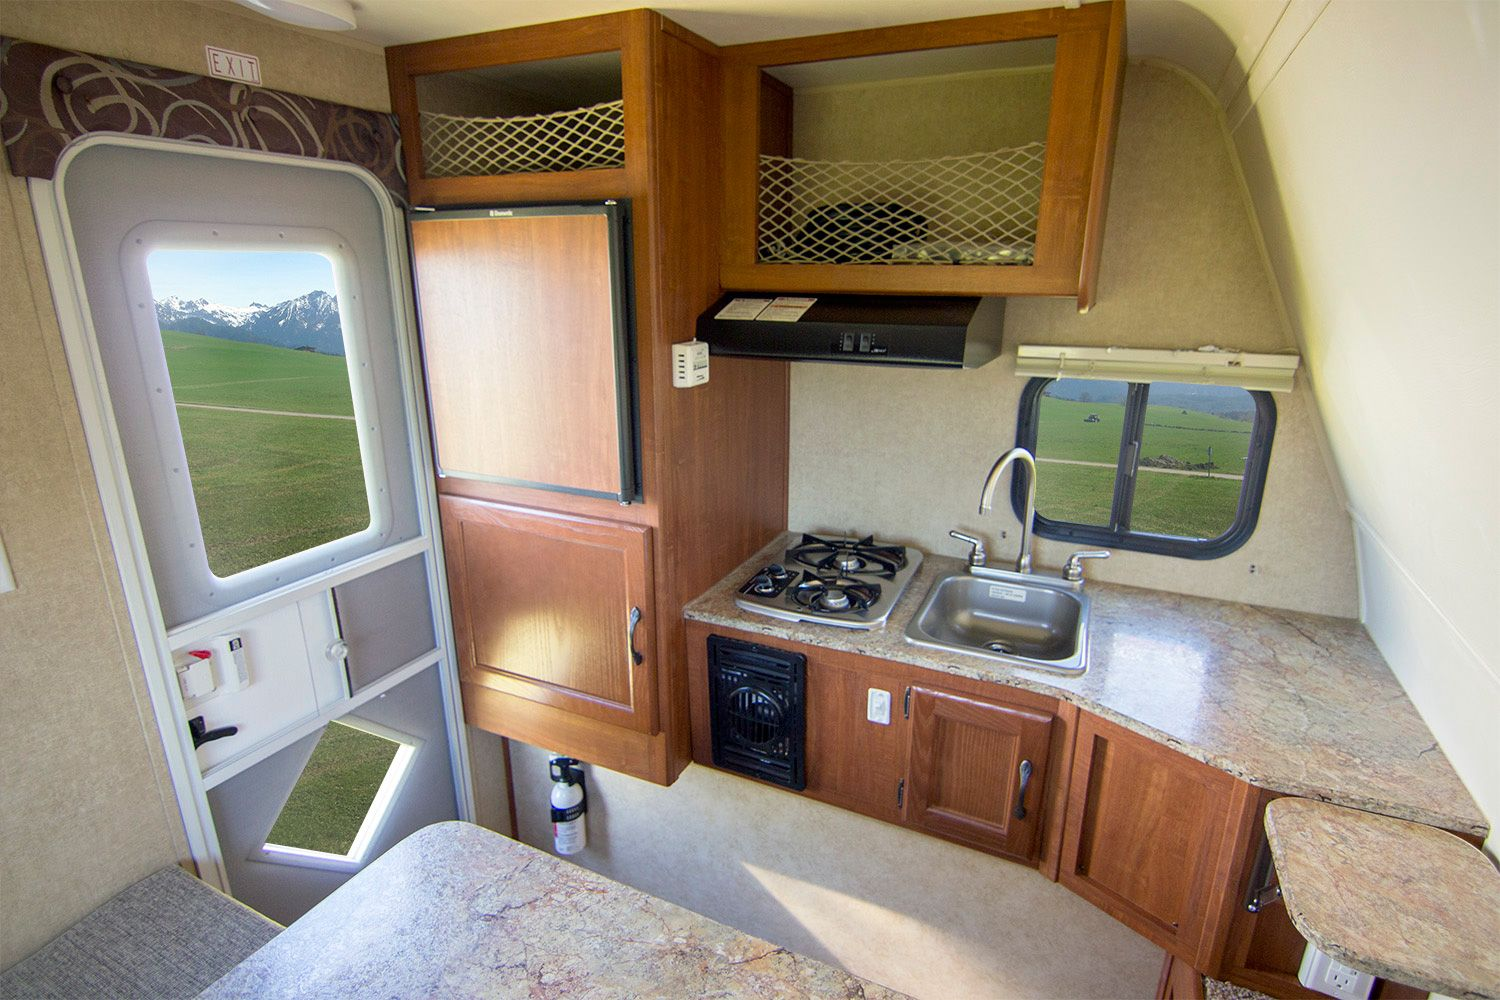 The Rayzr FK is a hard side cabover-less camper with a front kitchen